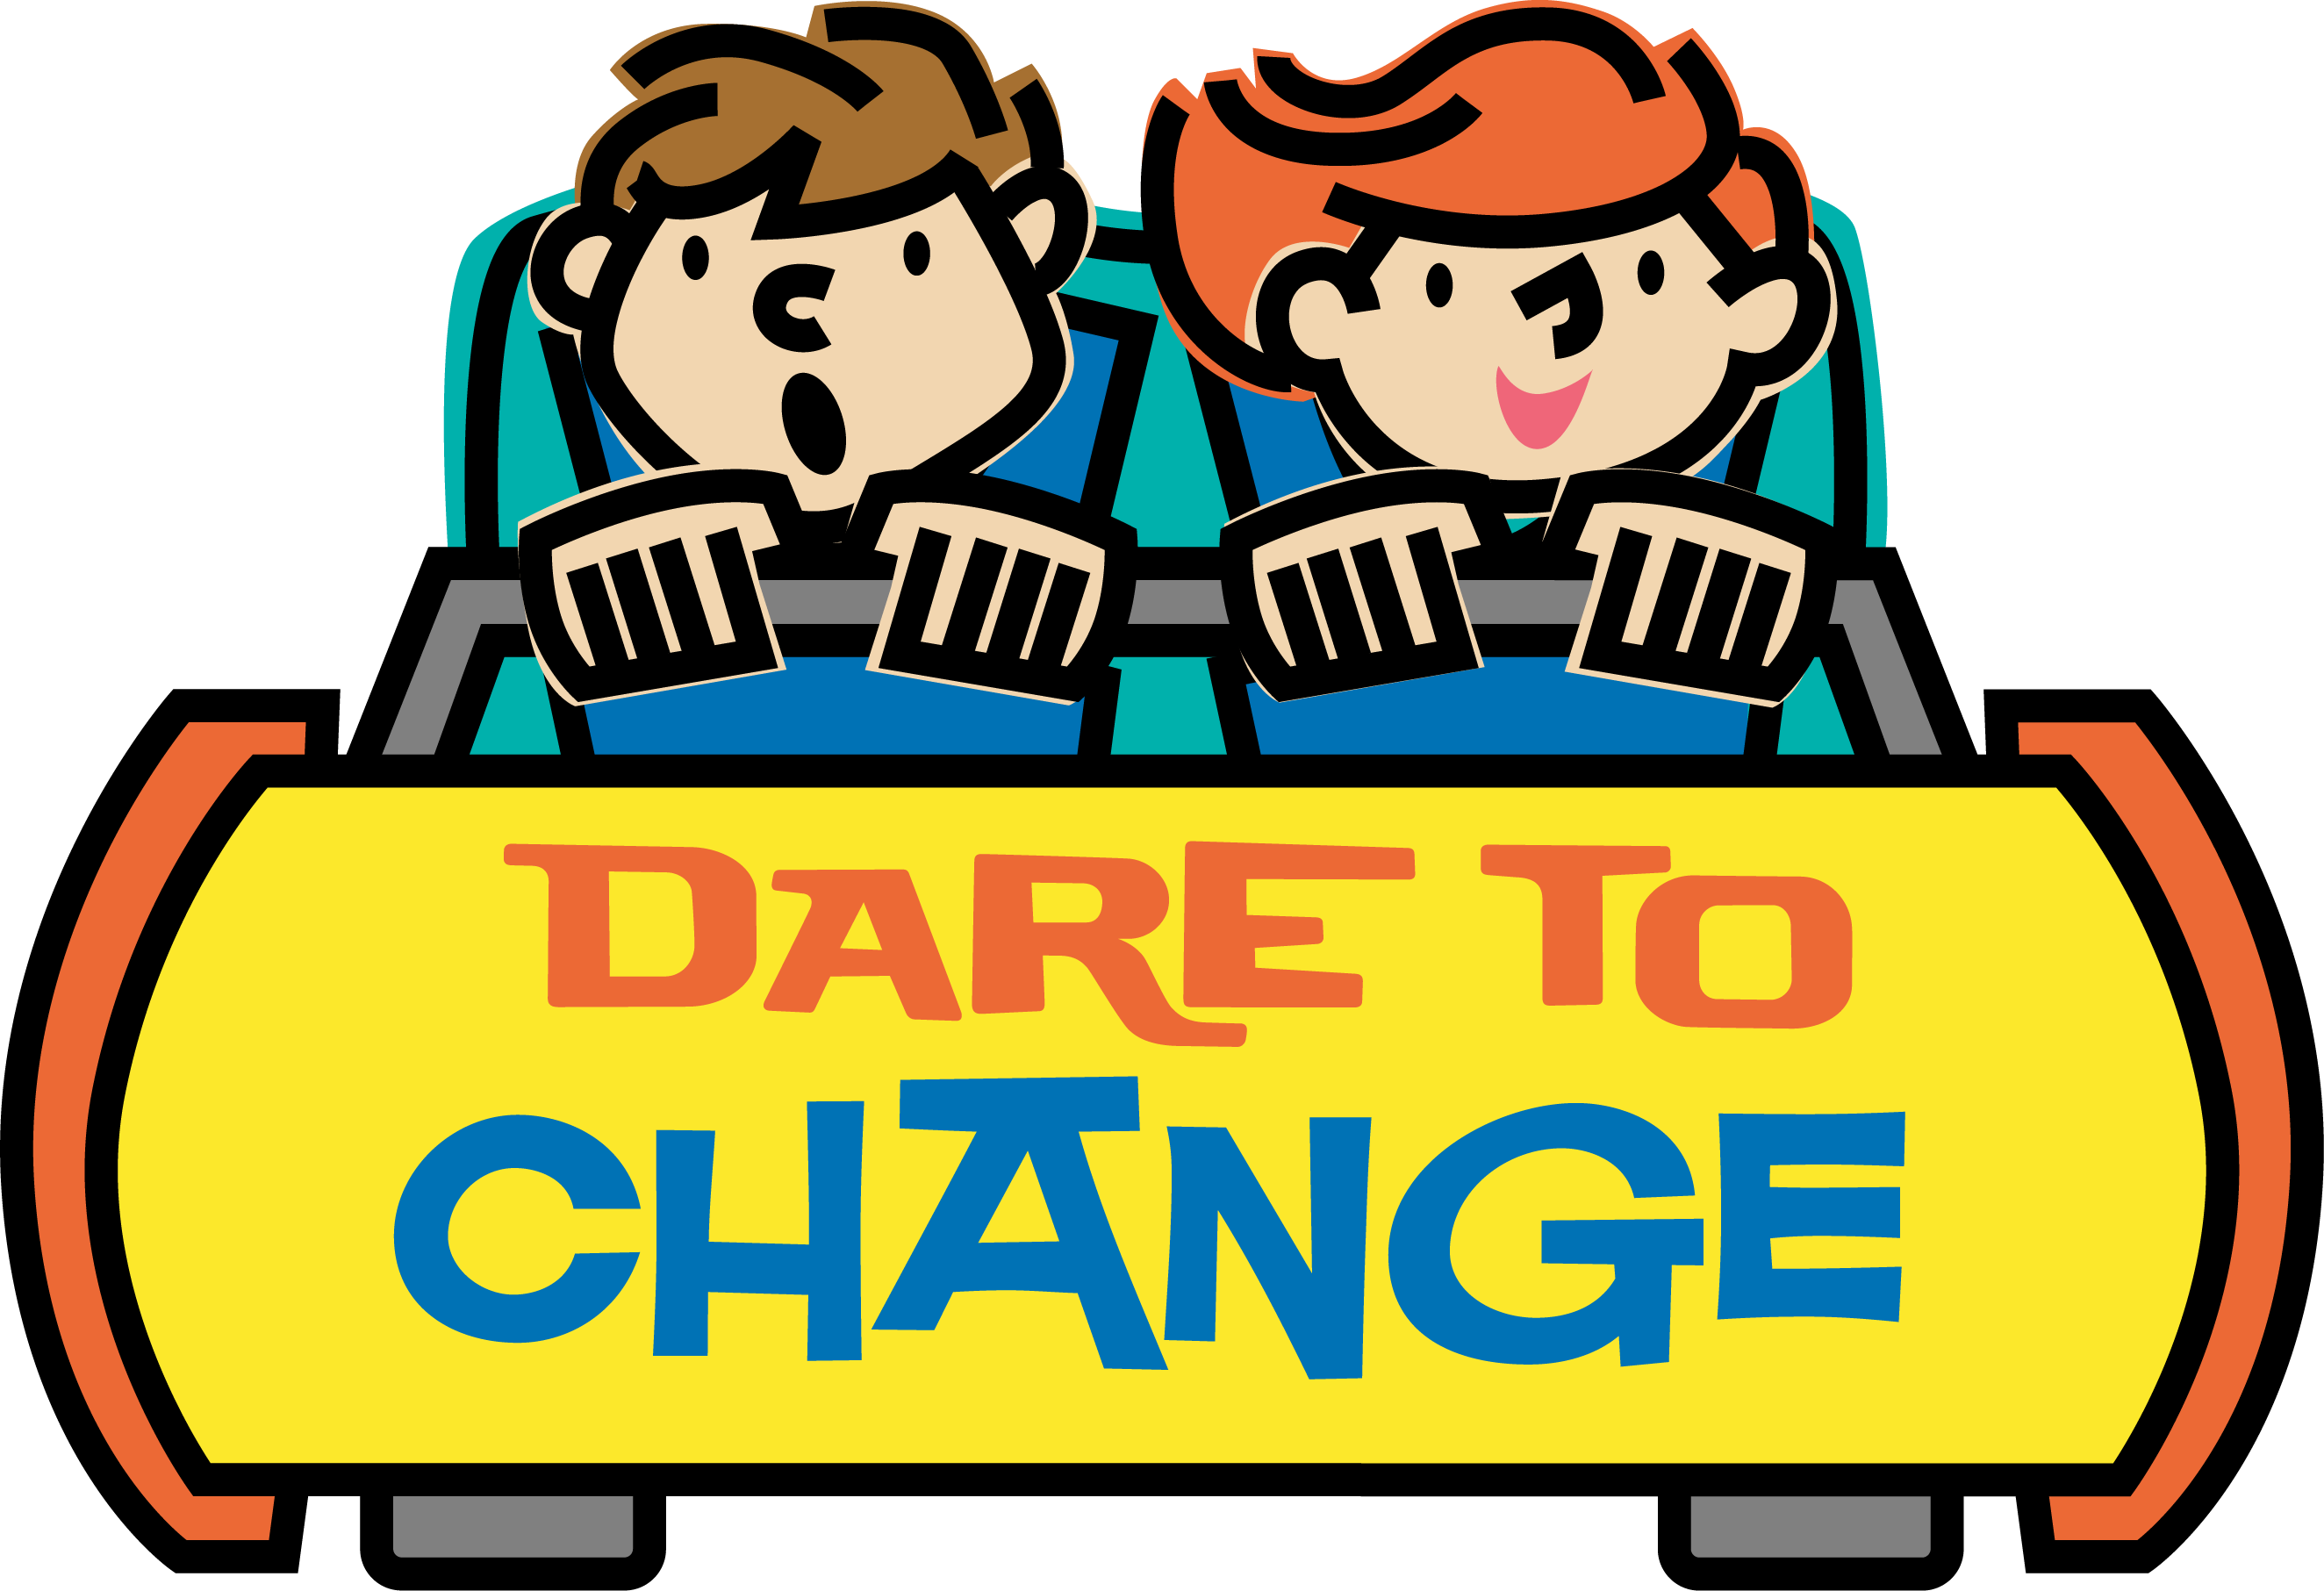 Free Changes Cliparts, Download Free Clip Art, Free Clip Art.